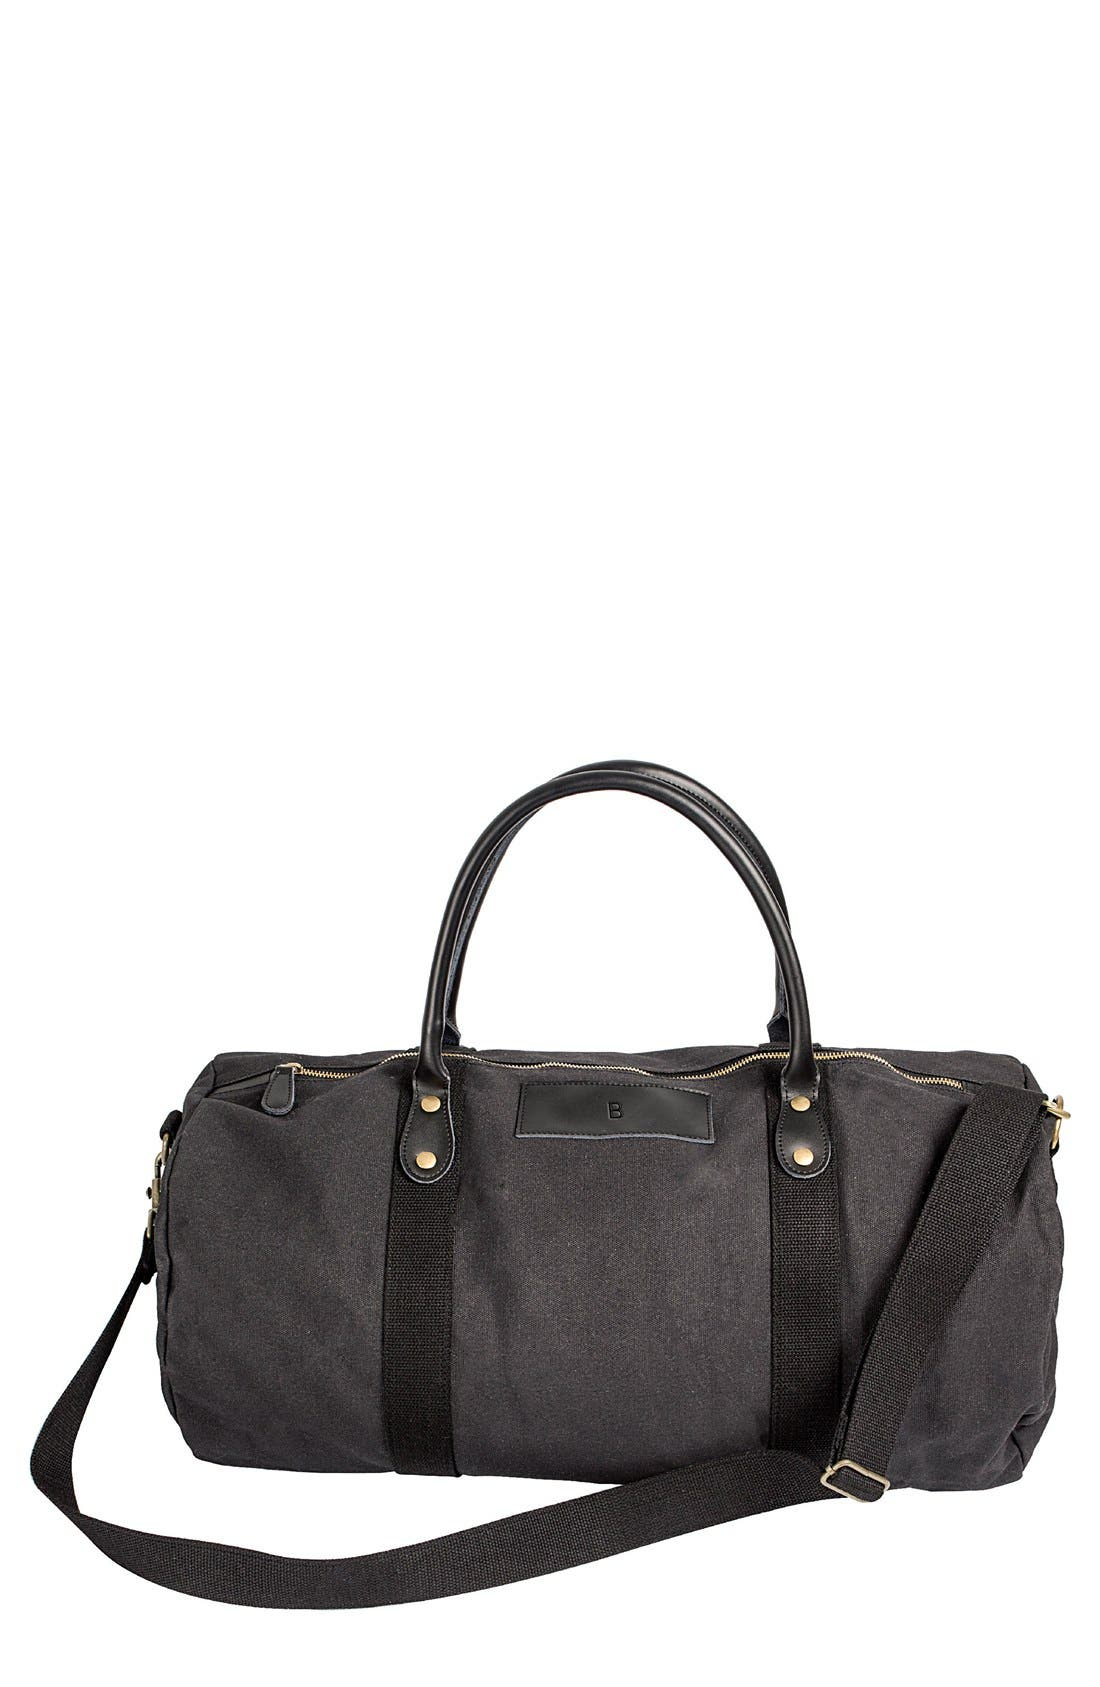 Main Image - Cathy's Concepts Monogram Duffel Bag